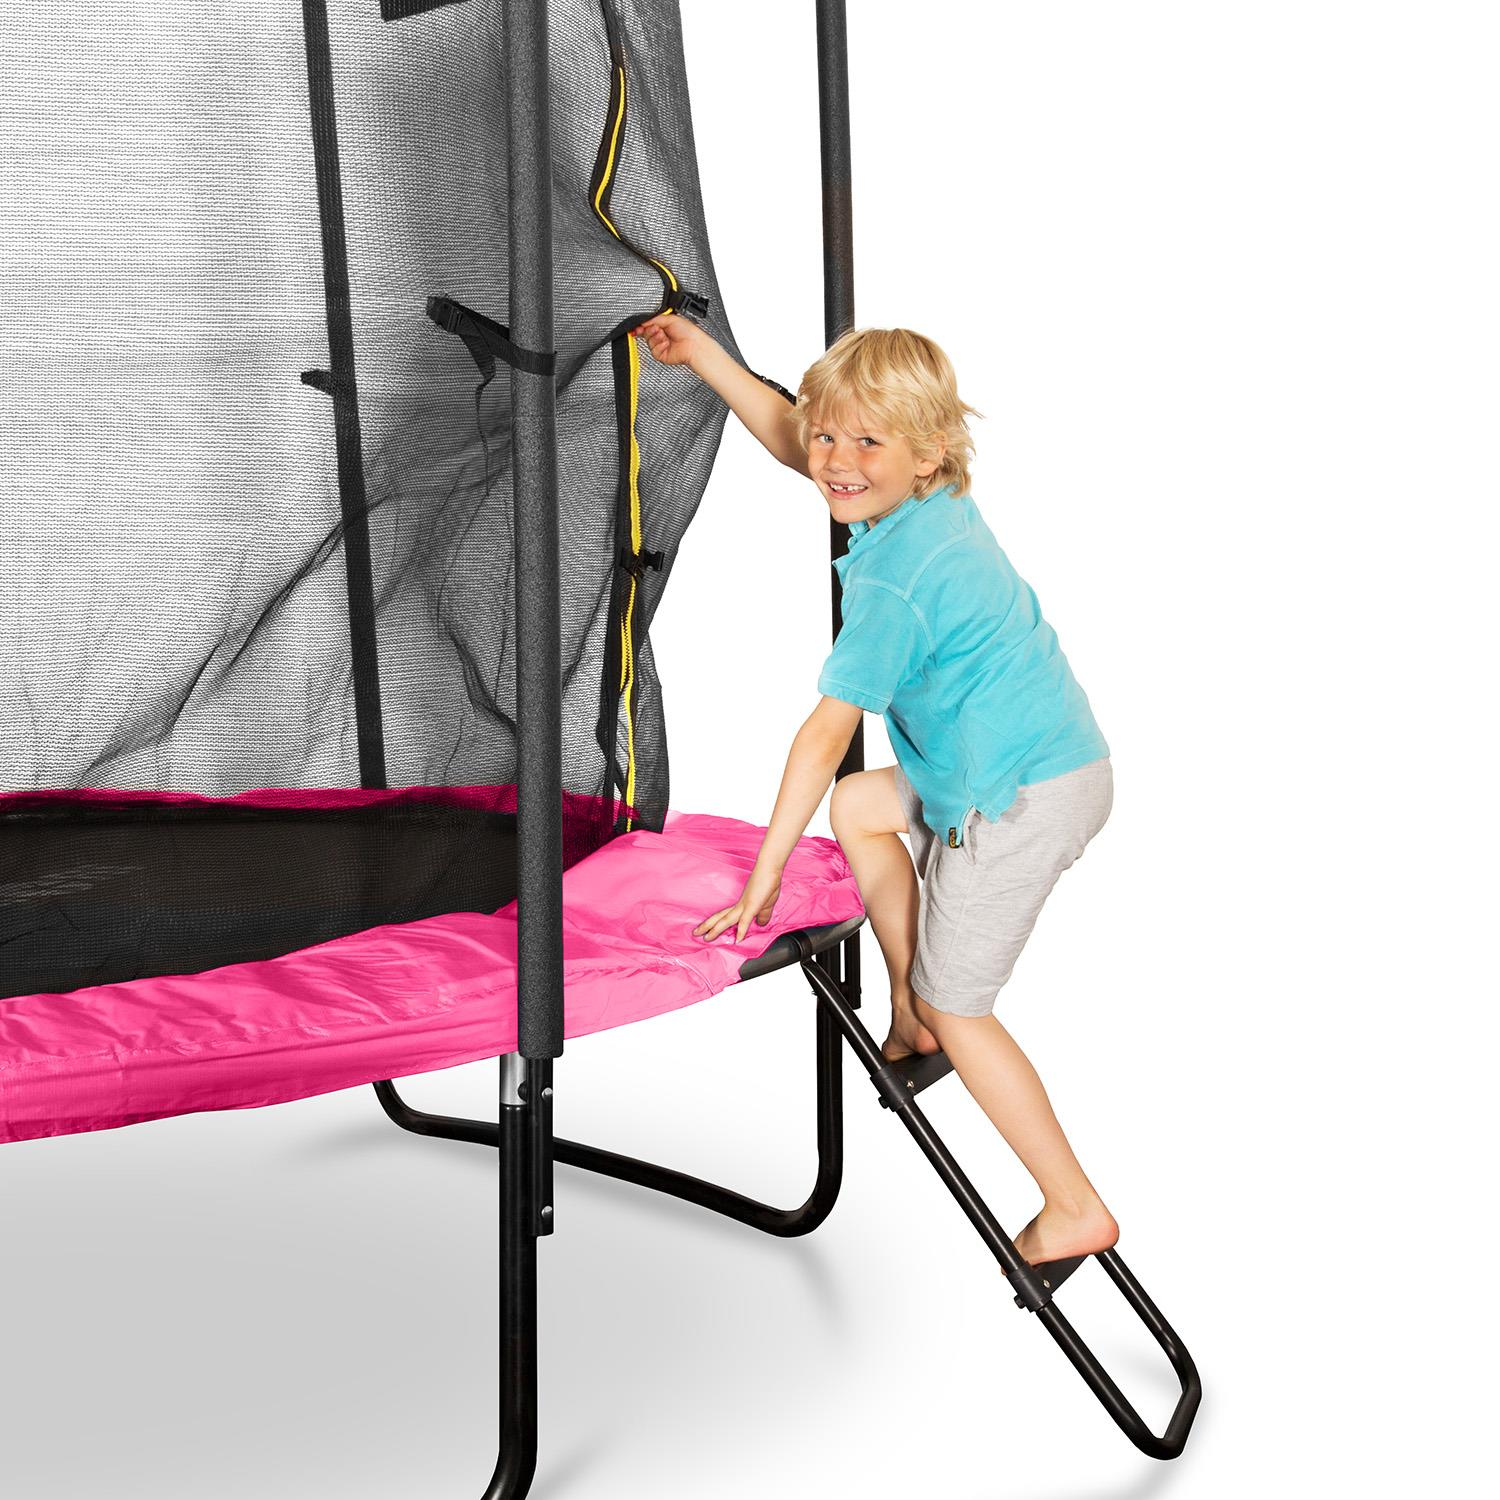 New Heavy Duty Trampoline 14 Ft With Ladder Safety Net: OUTDOOR PINK TRAMPOLINE WIDE LADDER Inc. SAFETY NET